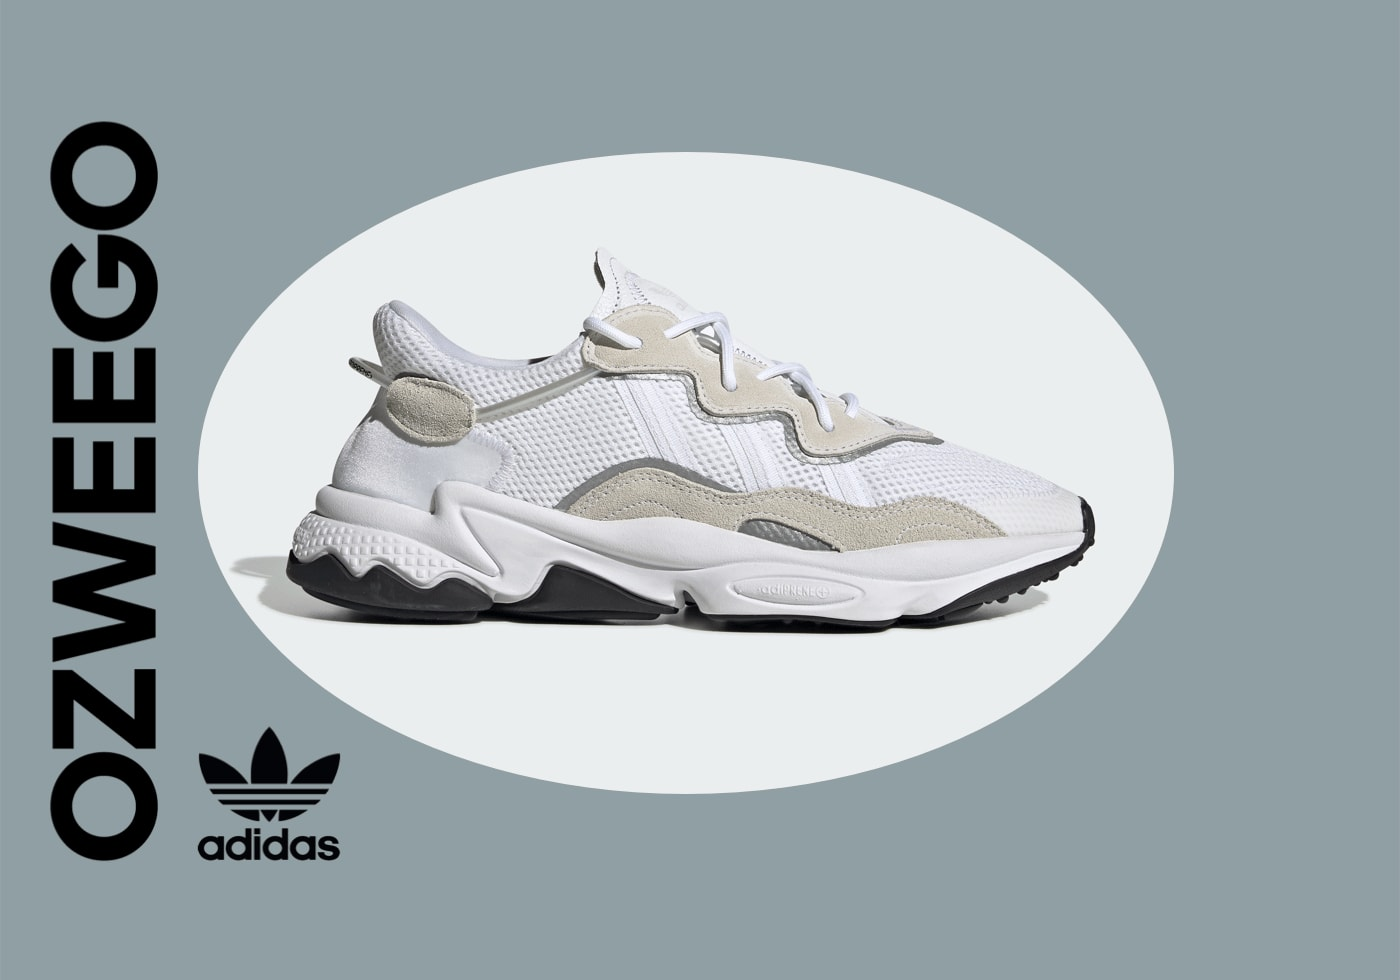 adidas Ozweego Shoes & Sneakers | Members Get 33% Off with Code ALLSET